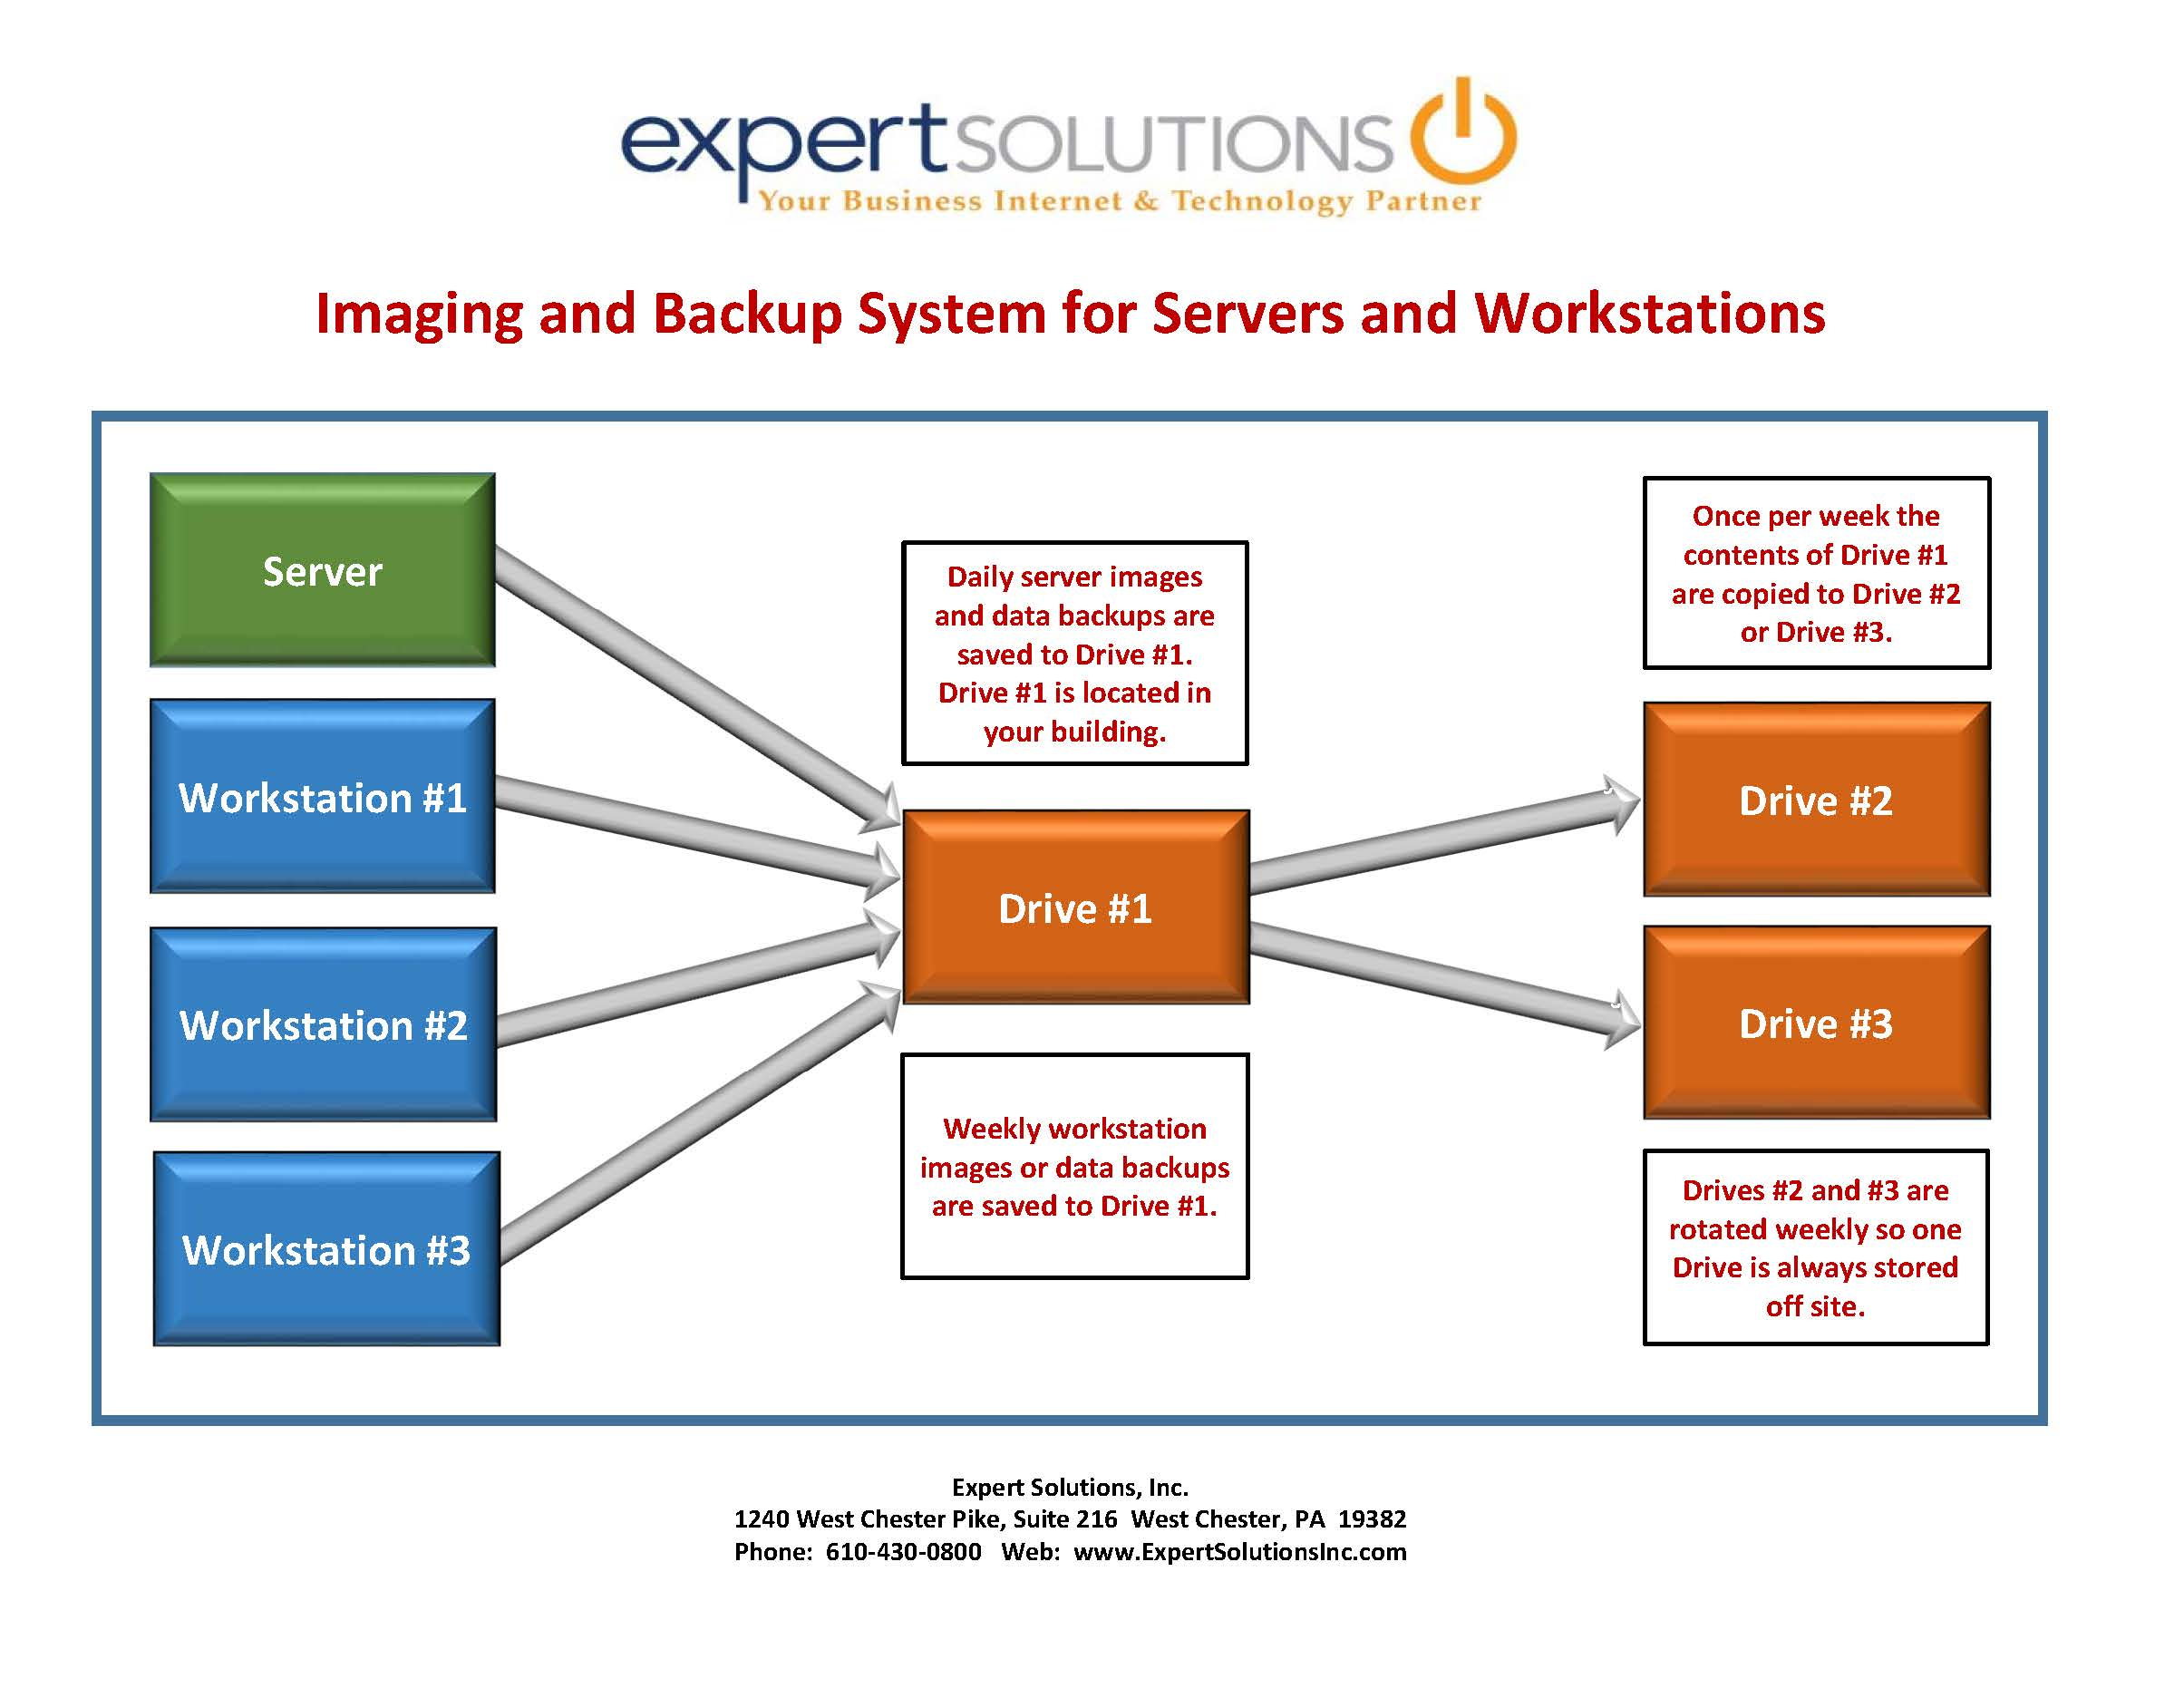 Imaging and Backup System for Servers and Workstations